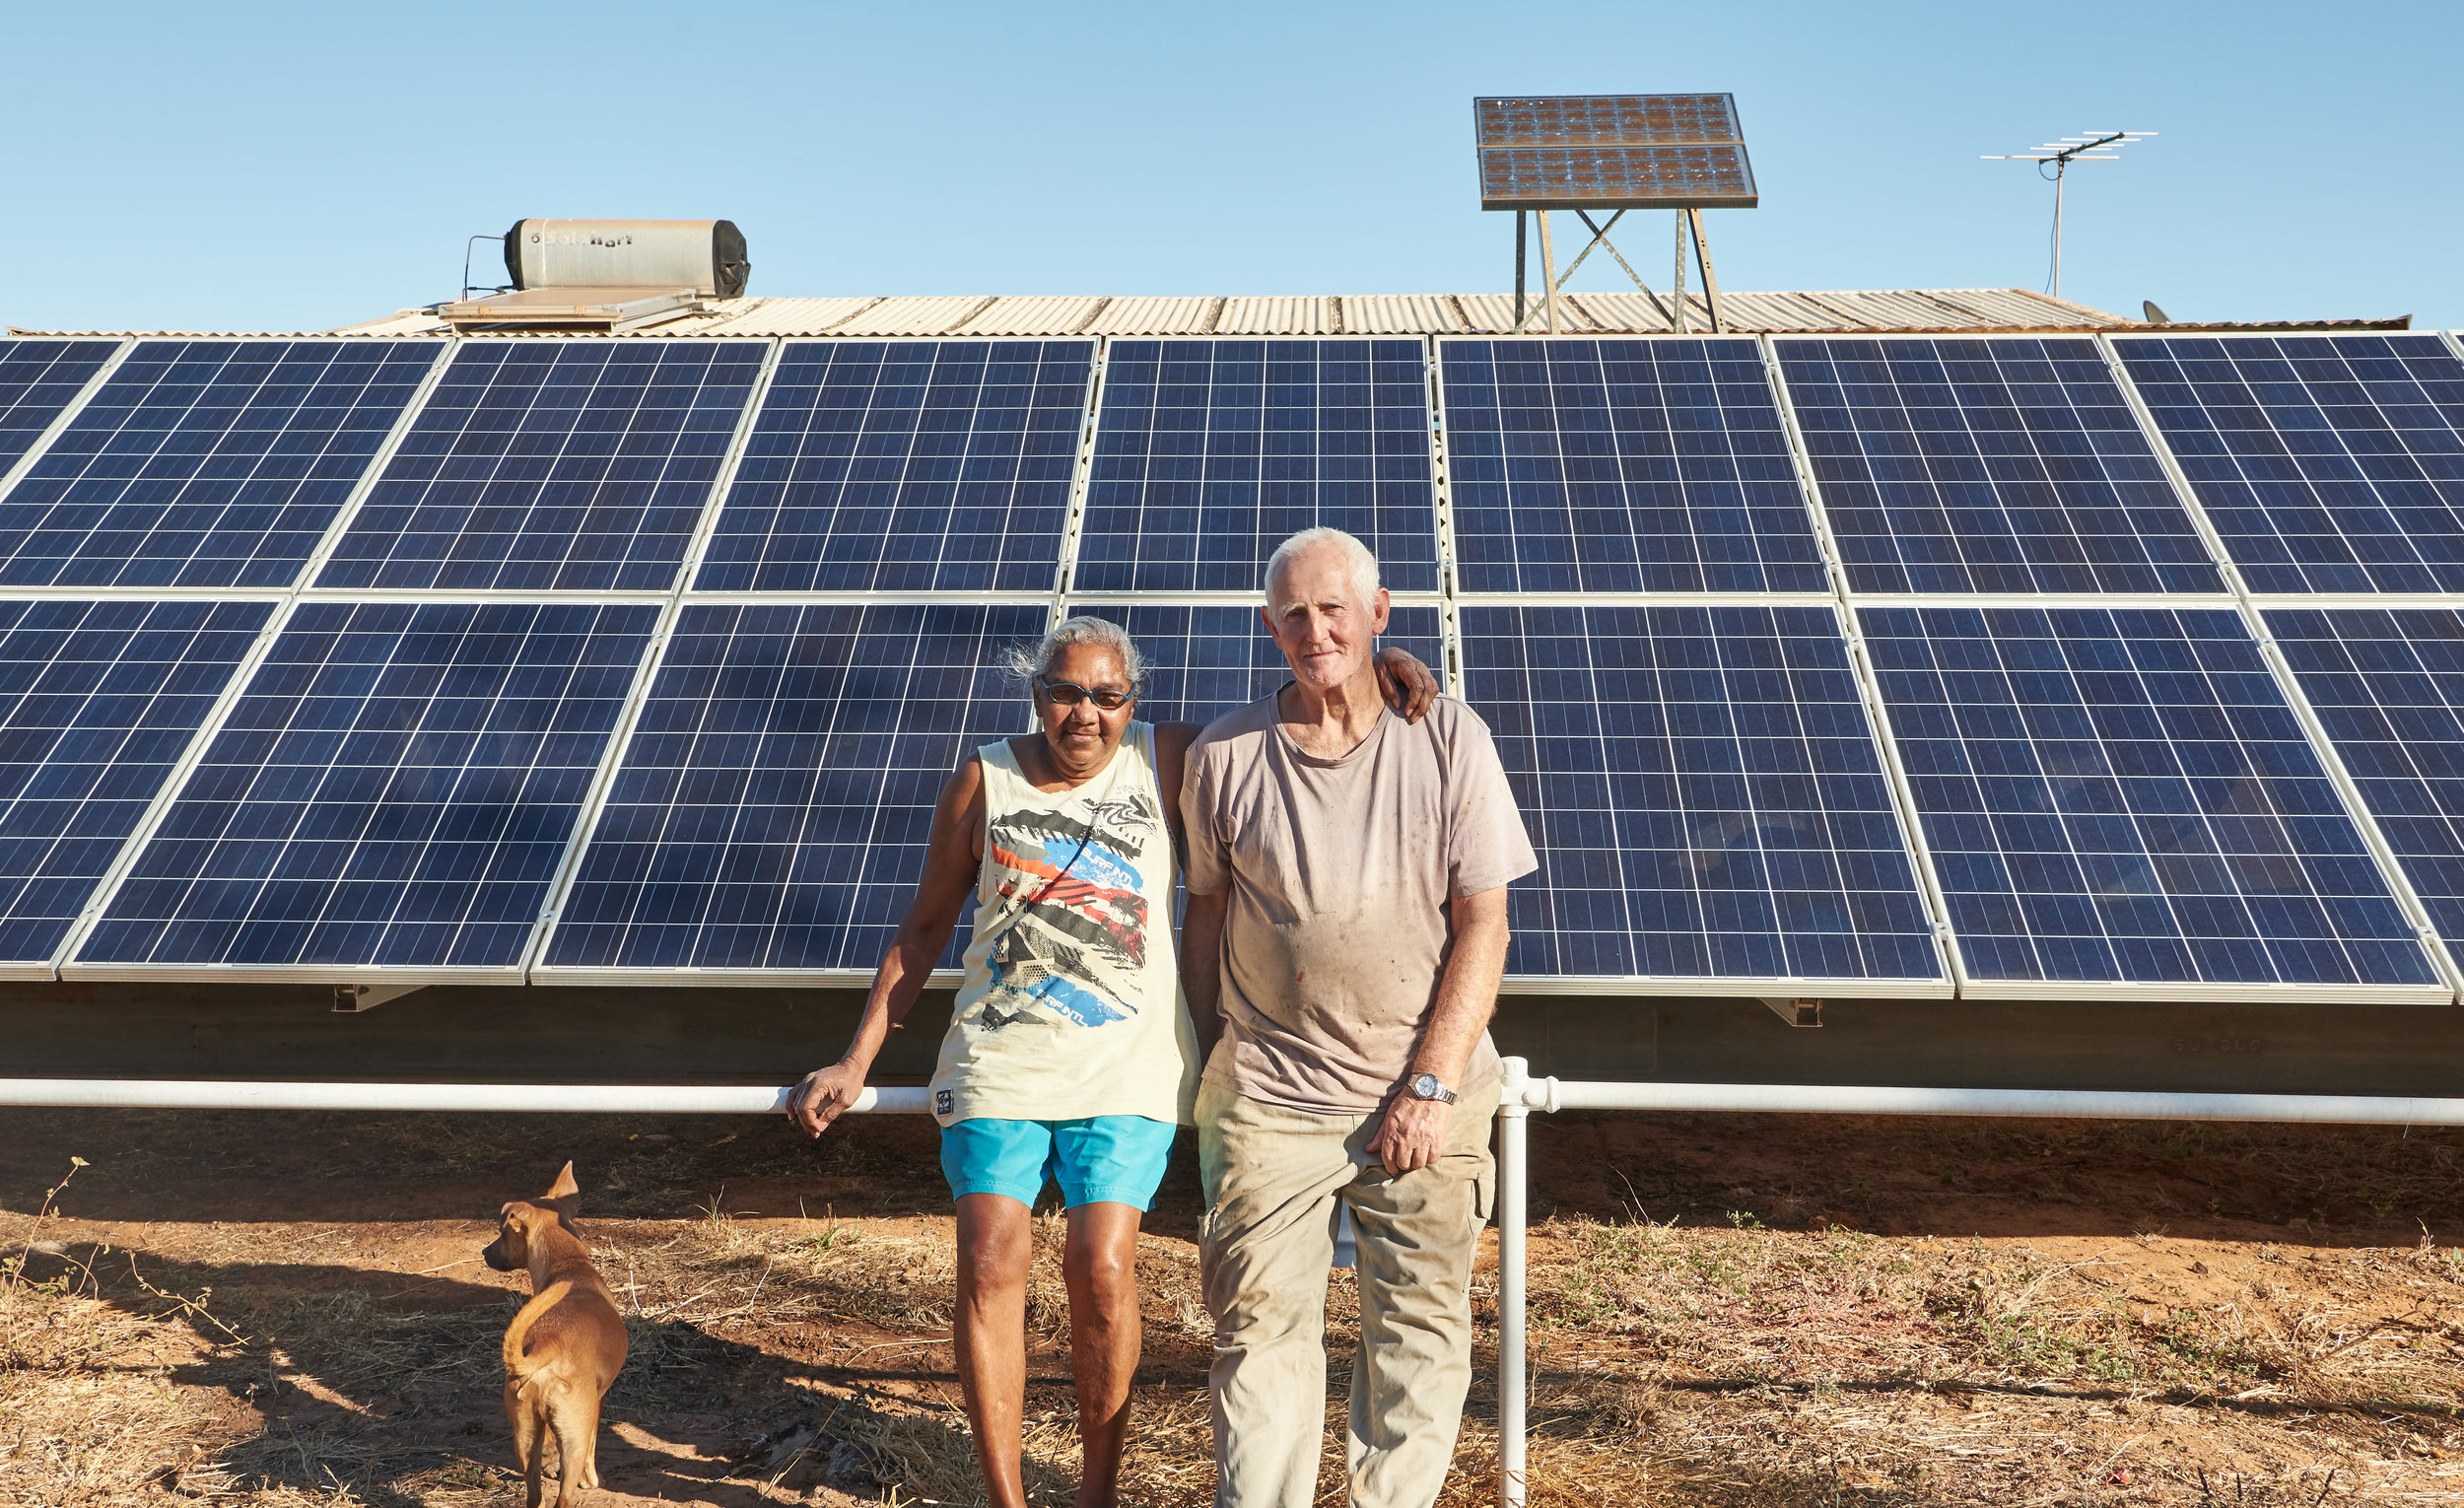 Outstations in the Kimberley can rely on solar to power all plant and machinery -